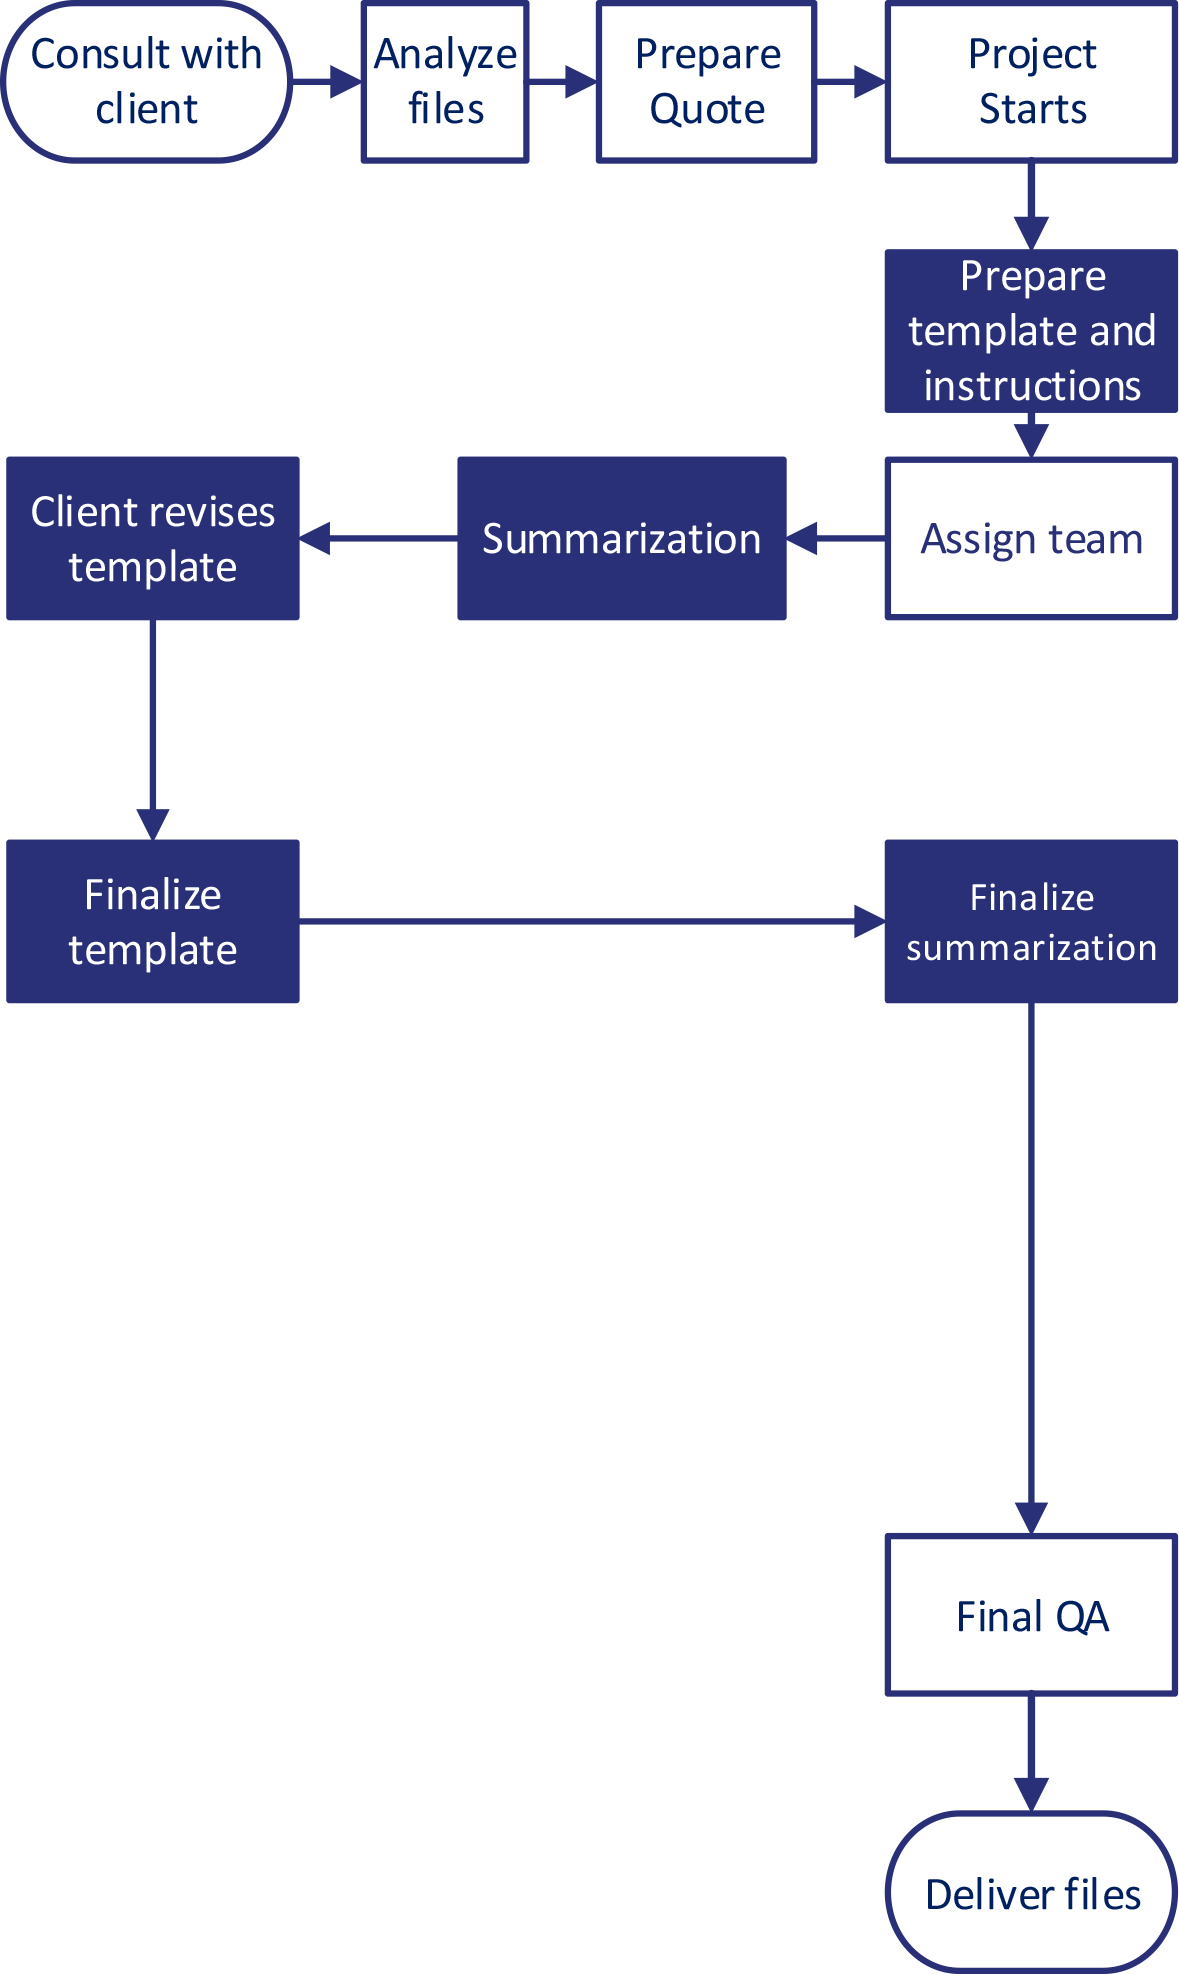 summarization-workflow